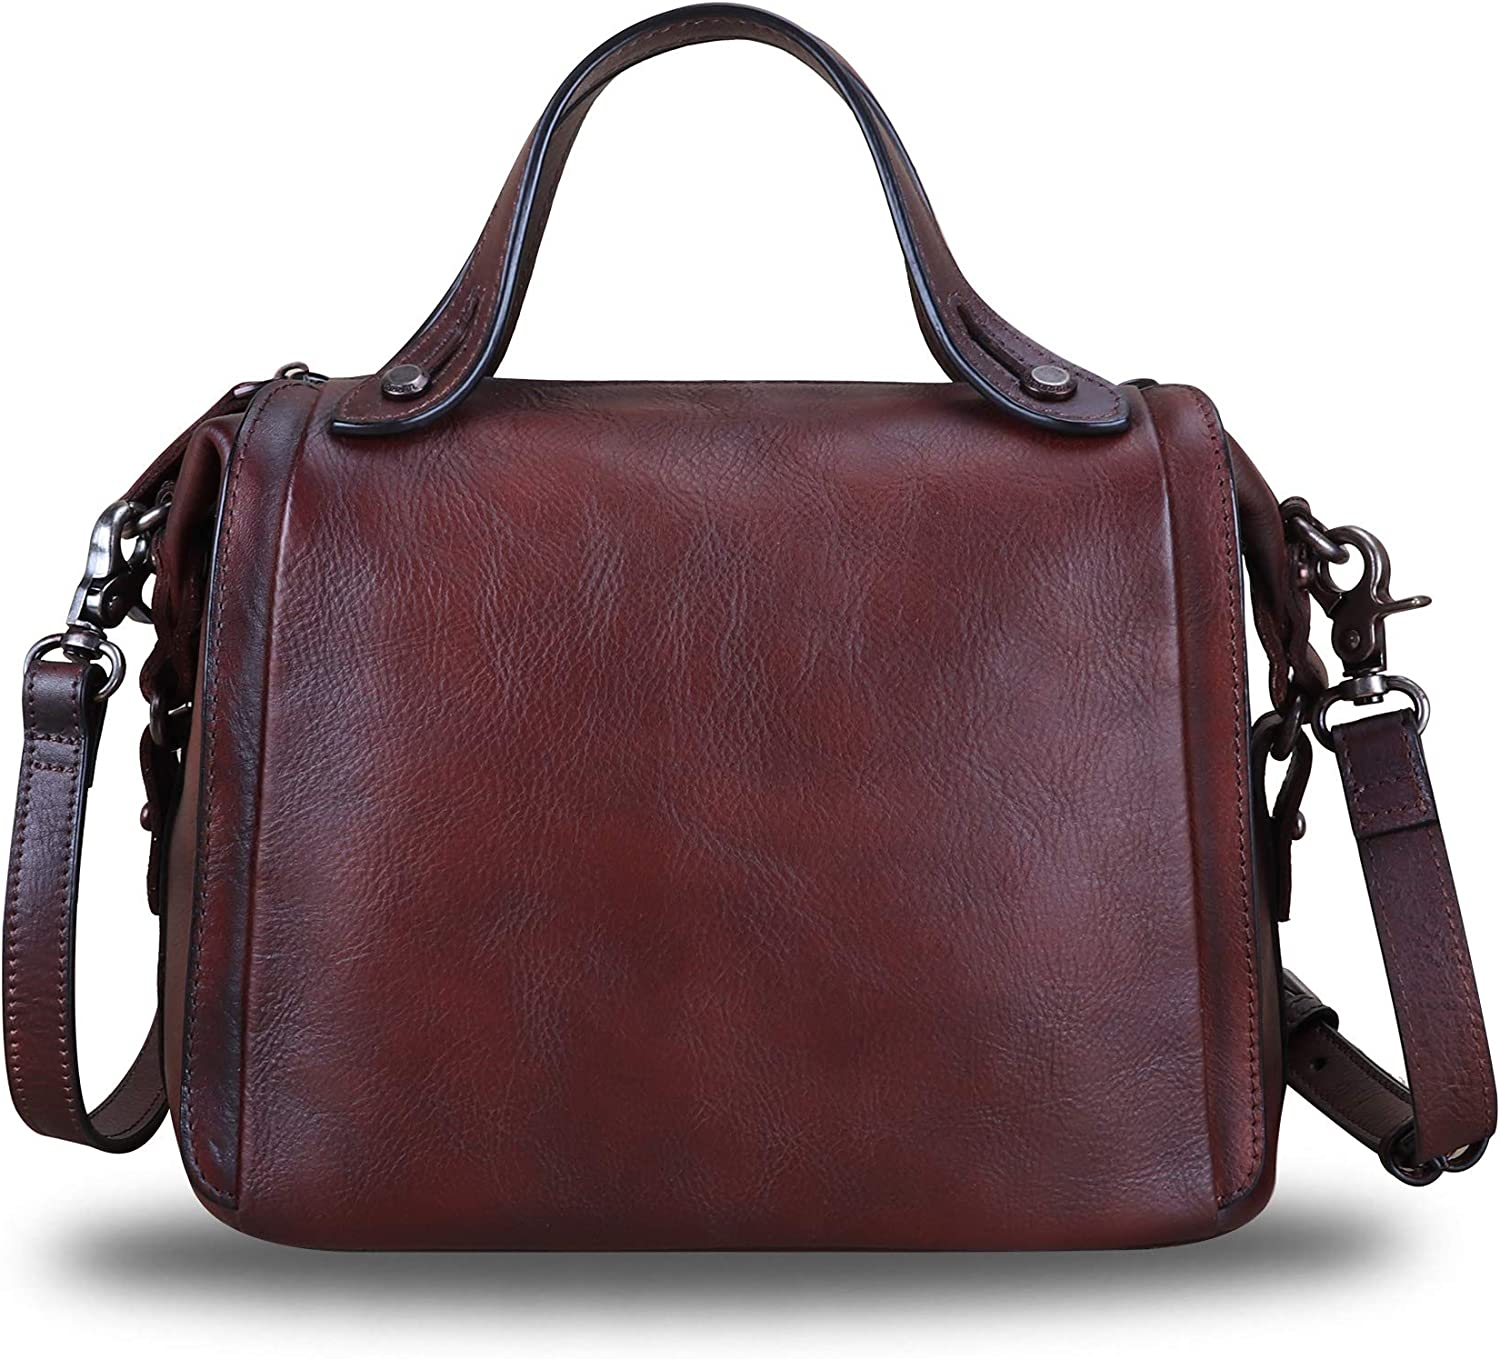 Genuine Leather Satchel Purse Max 73% OFF for Handmade Top Super Special SALE held Handl Women Retro